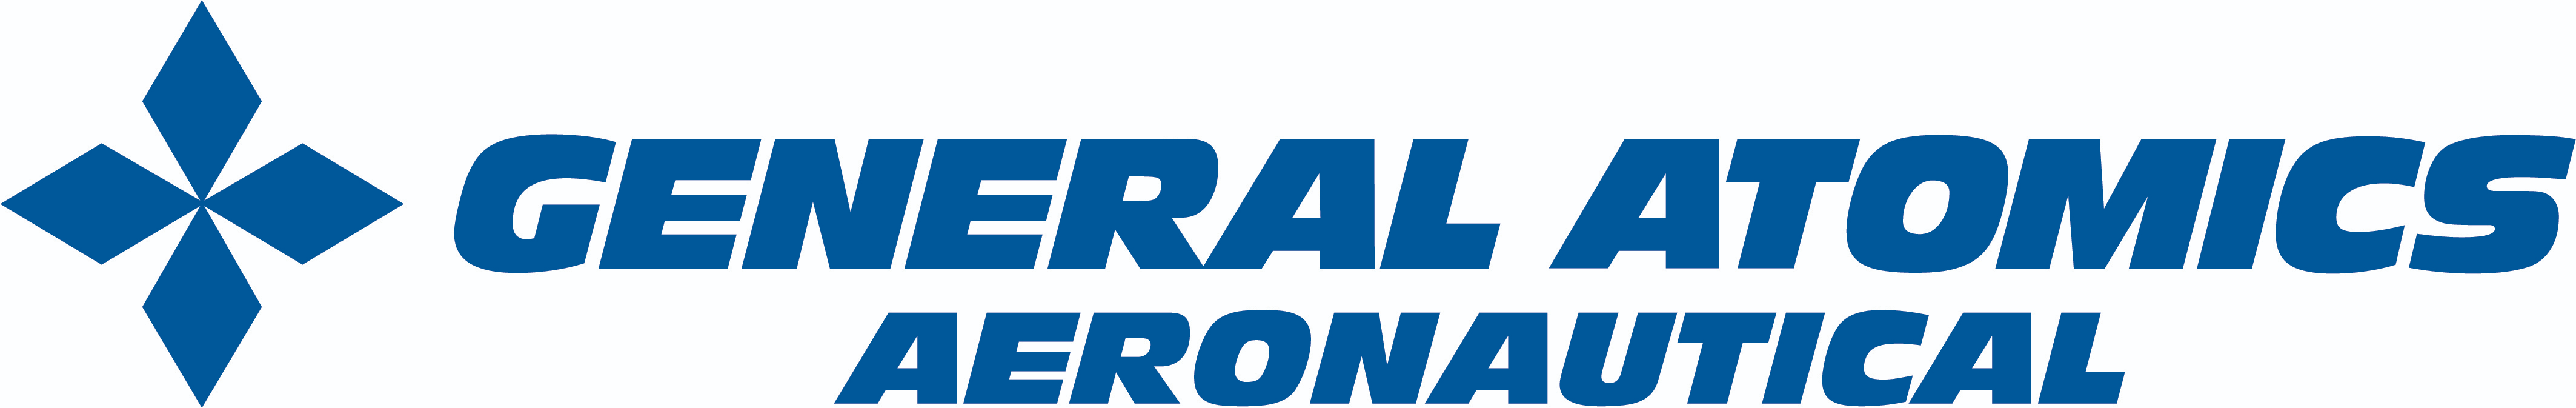 General Atomics Aeronautical Systems, Inc